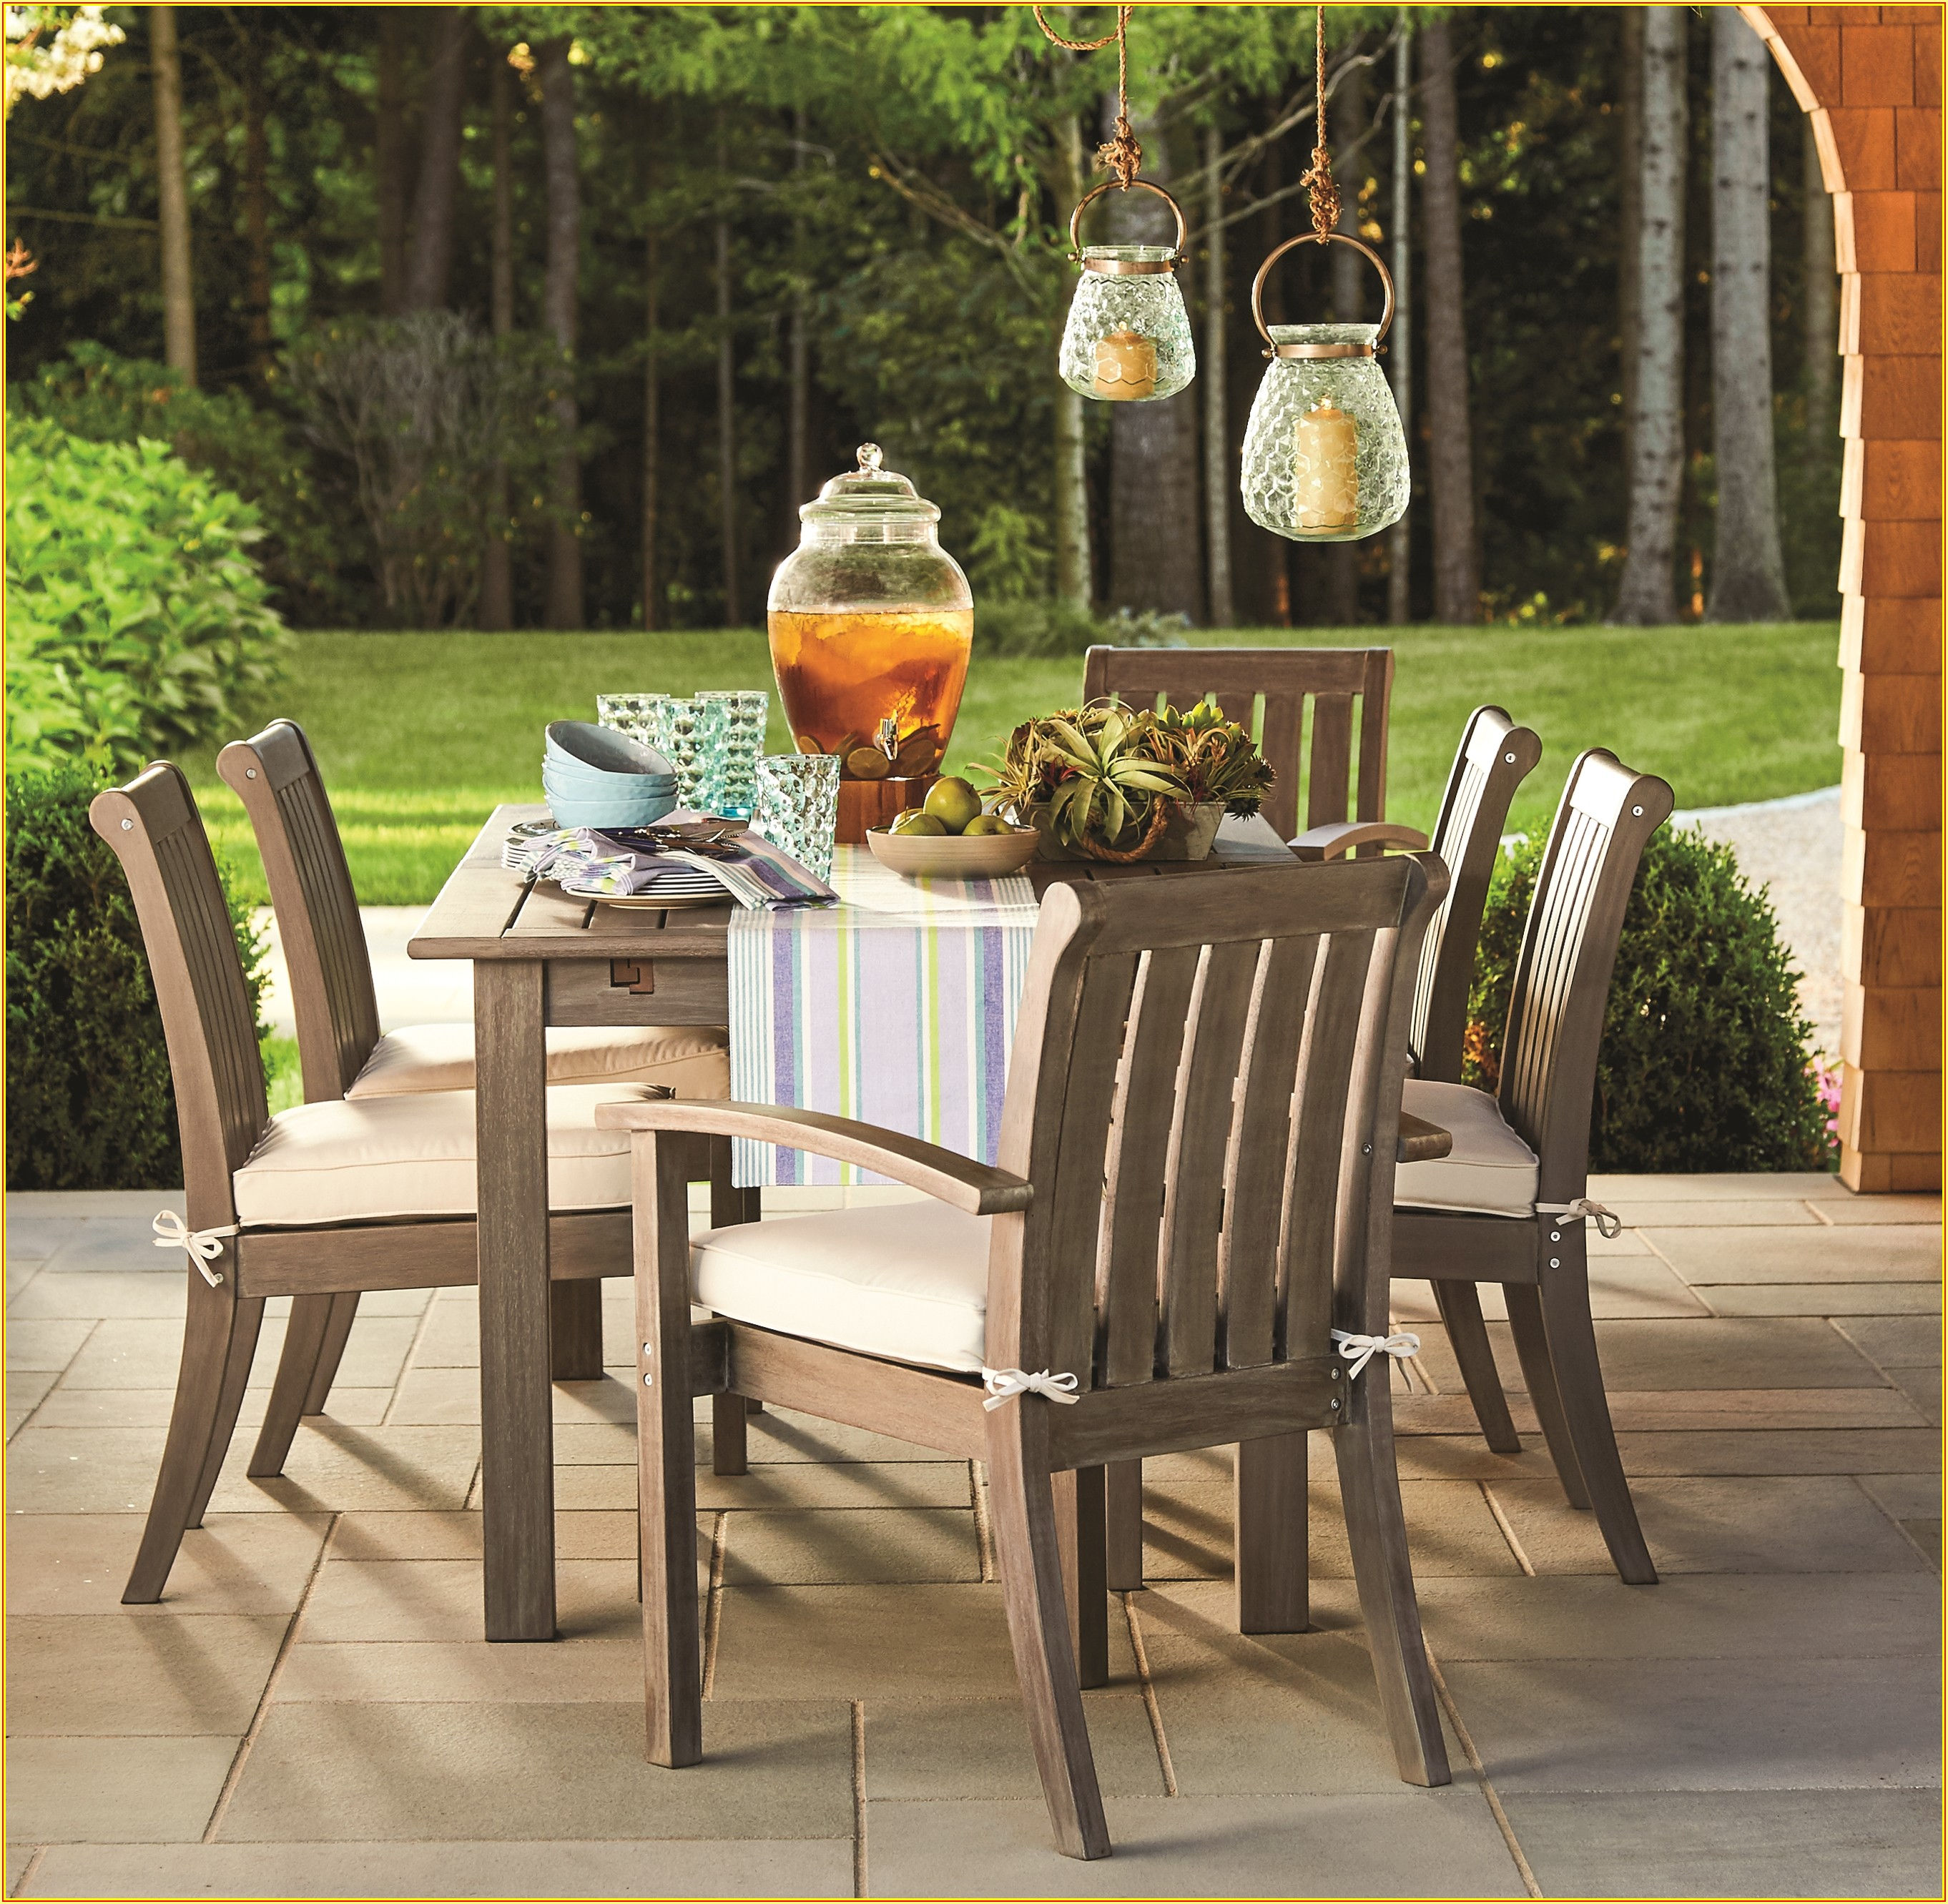 Birch Lane Patio Furniture